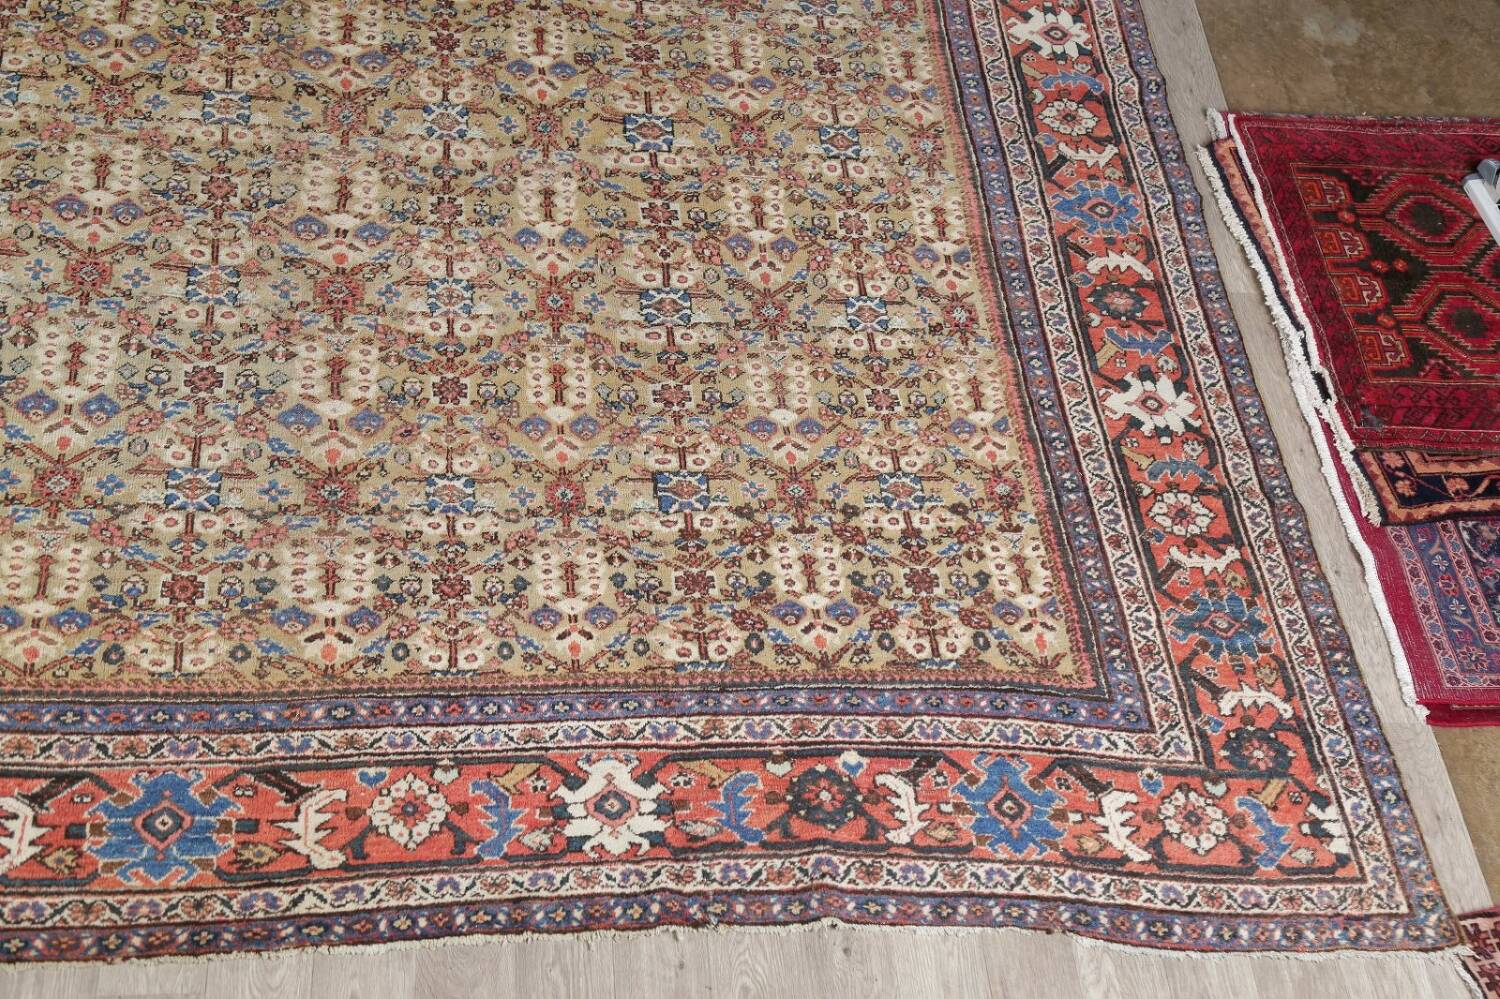 Antique Pre-1900 Sultanabad Persian Rug 13x22 Large image 5